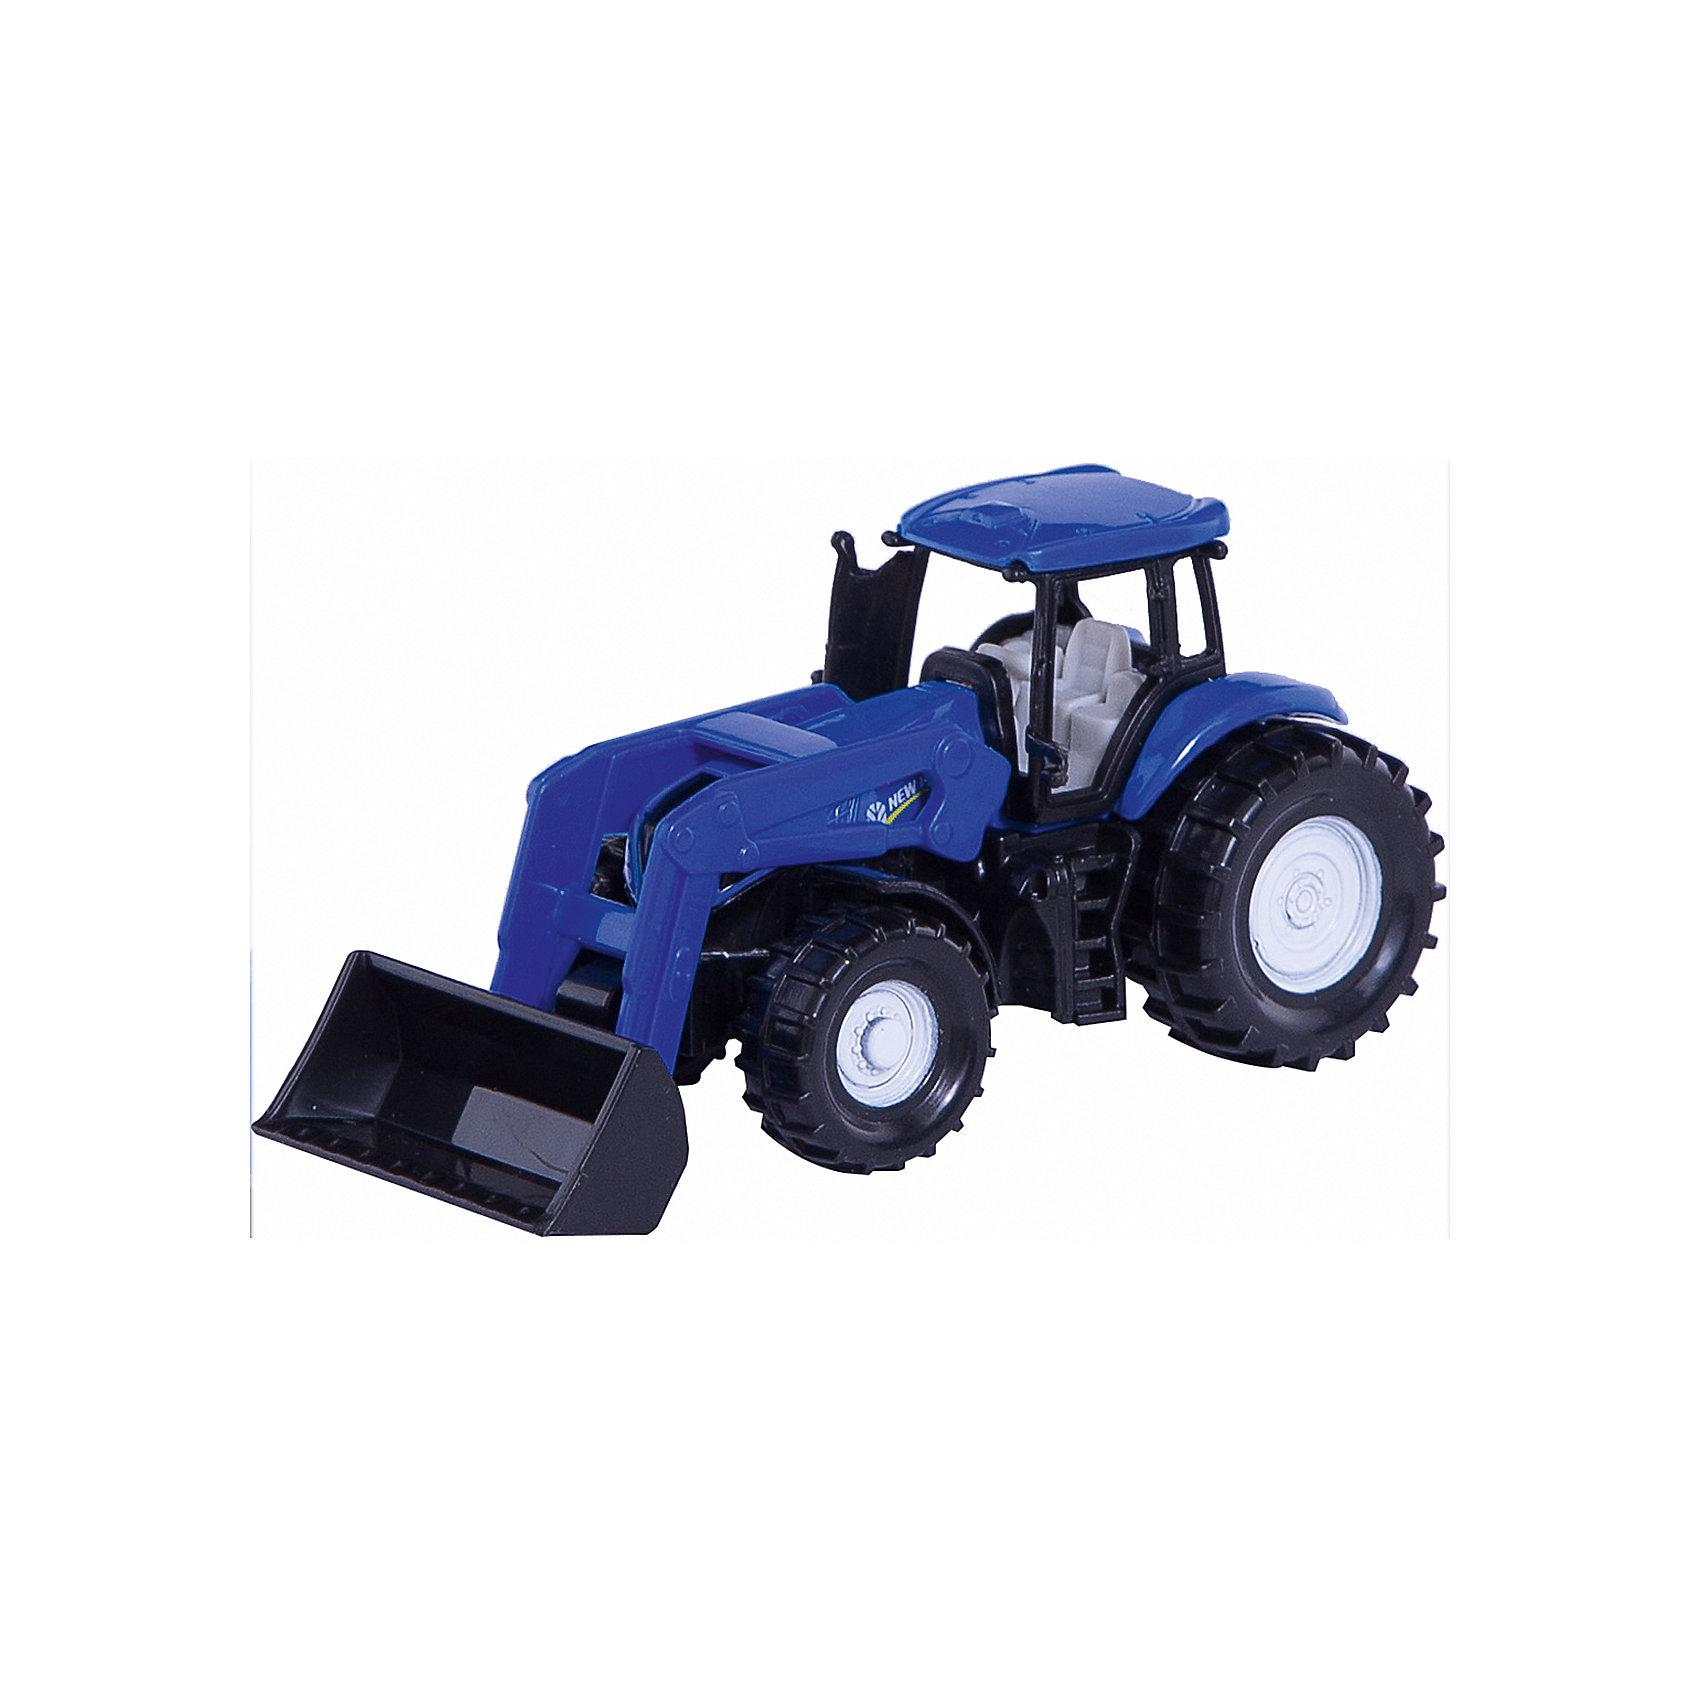 SIKU Трактор New Holland, синий (1:72), SIKU игрушка siku трактор new holland t8 390 6 7 3 4 4 4см 1012